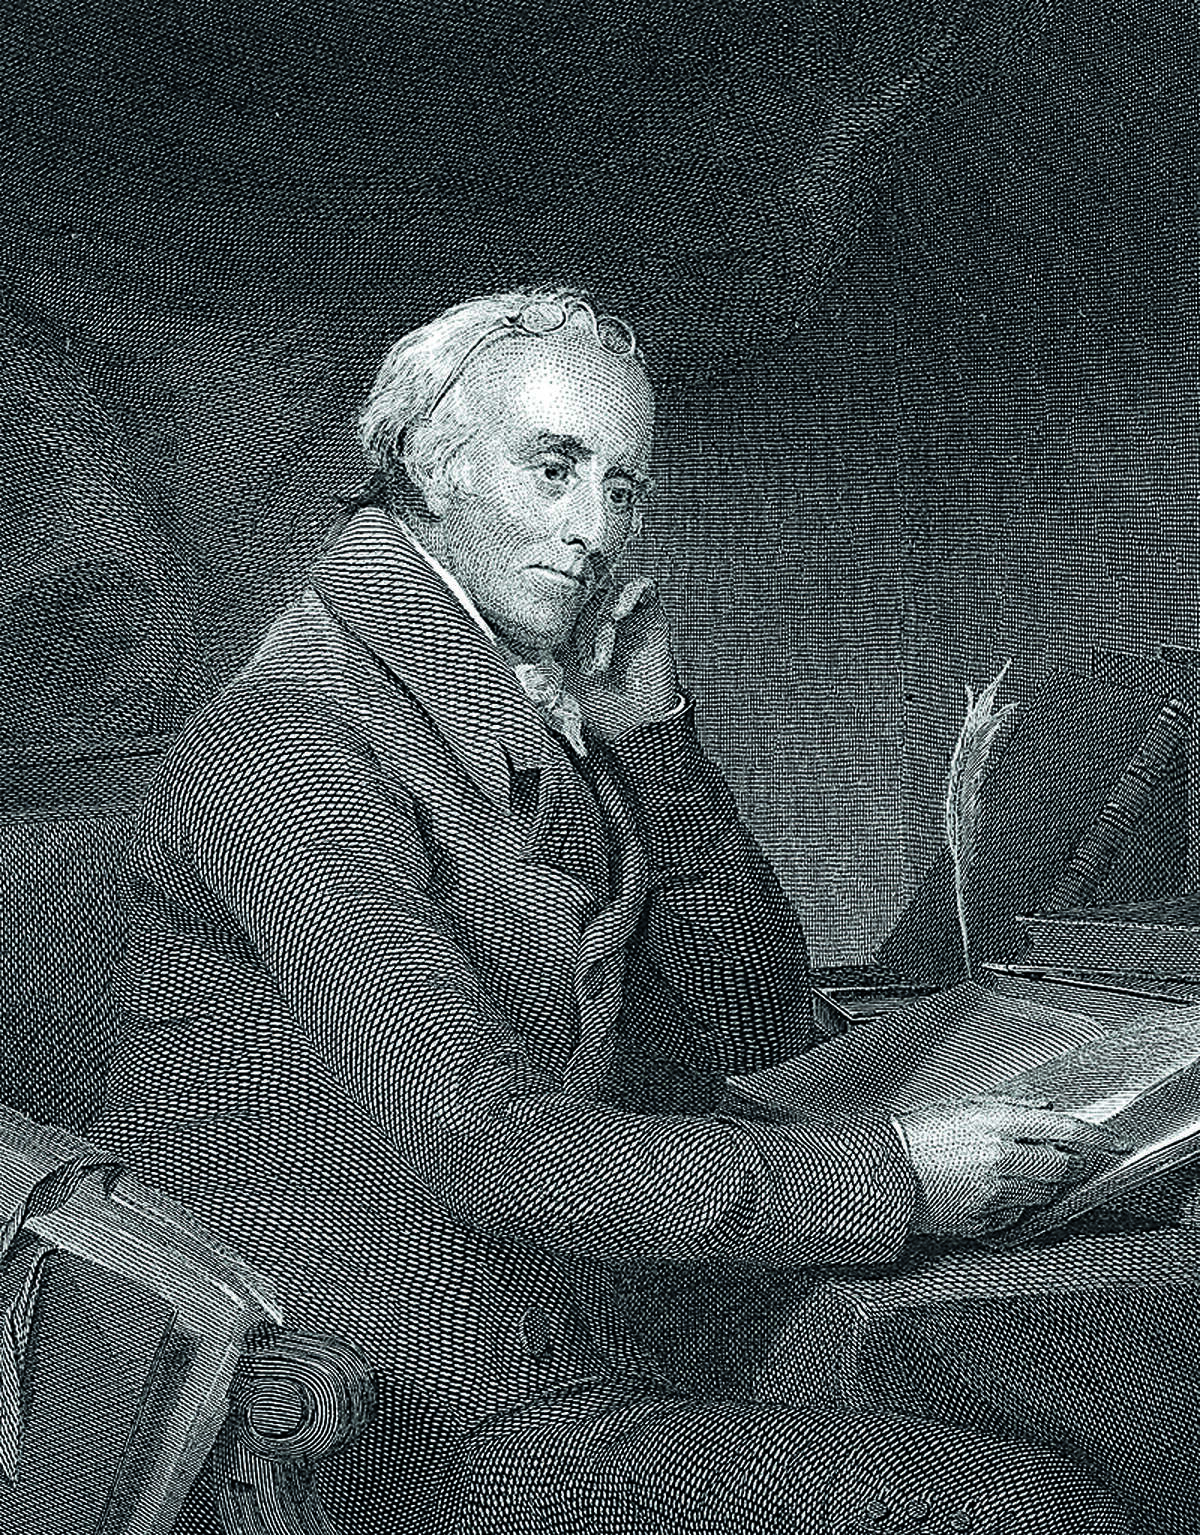 Benjamin Rush was a physician, politician, social reformer, educator and humanitarian, as well as the founder of Dickinson College in Carlisle, Pennsylvania.